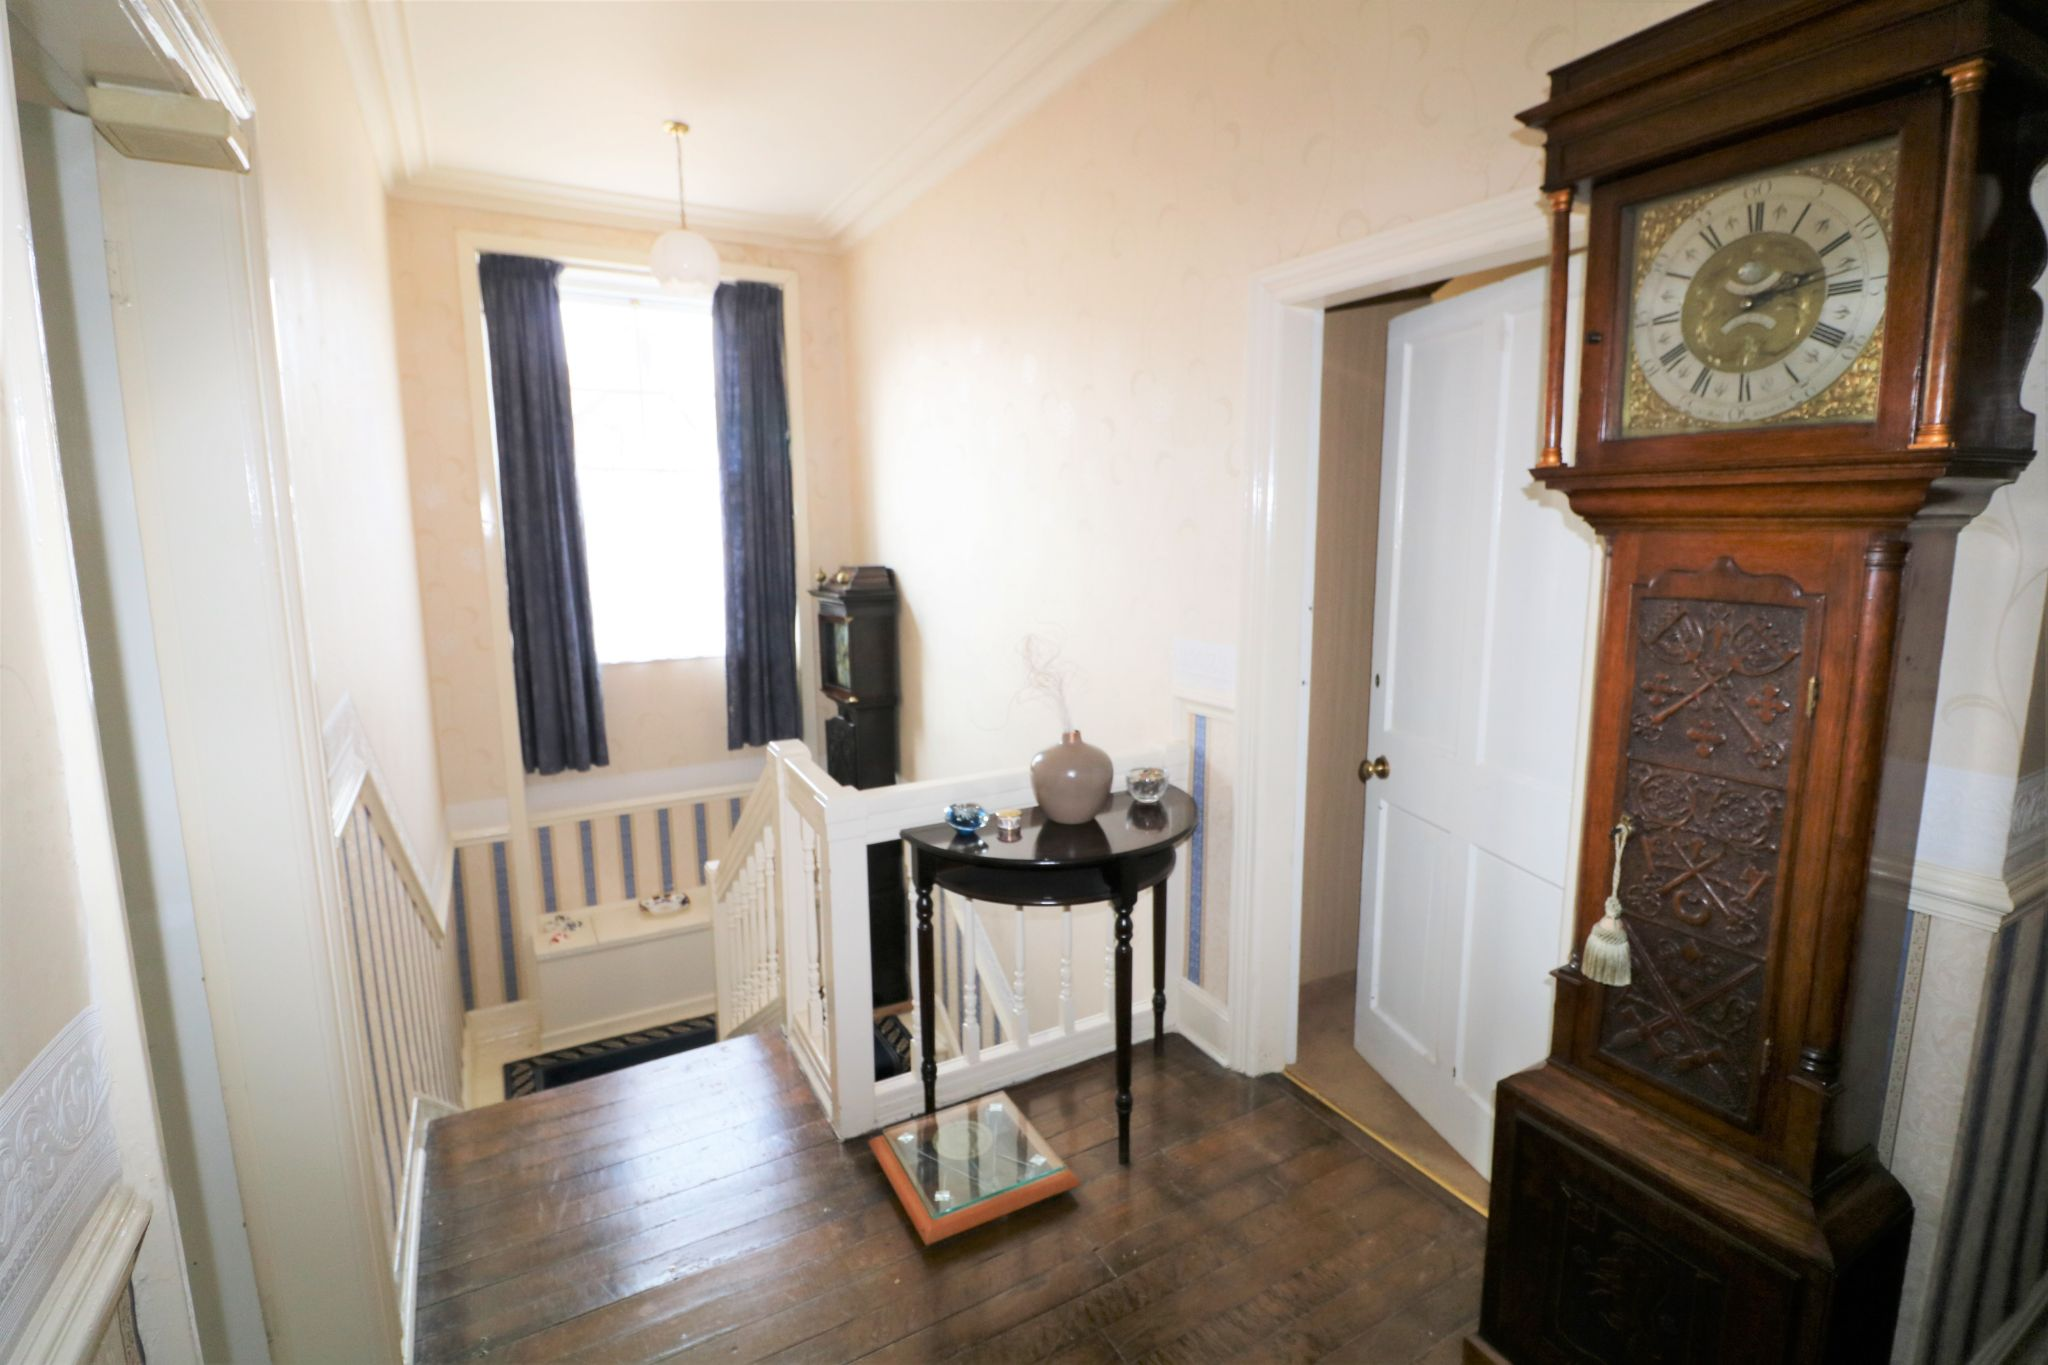 6 Bedroom Semi-detached House For Sale - Photograph 21